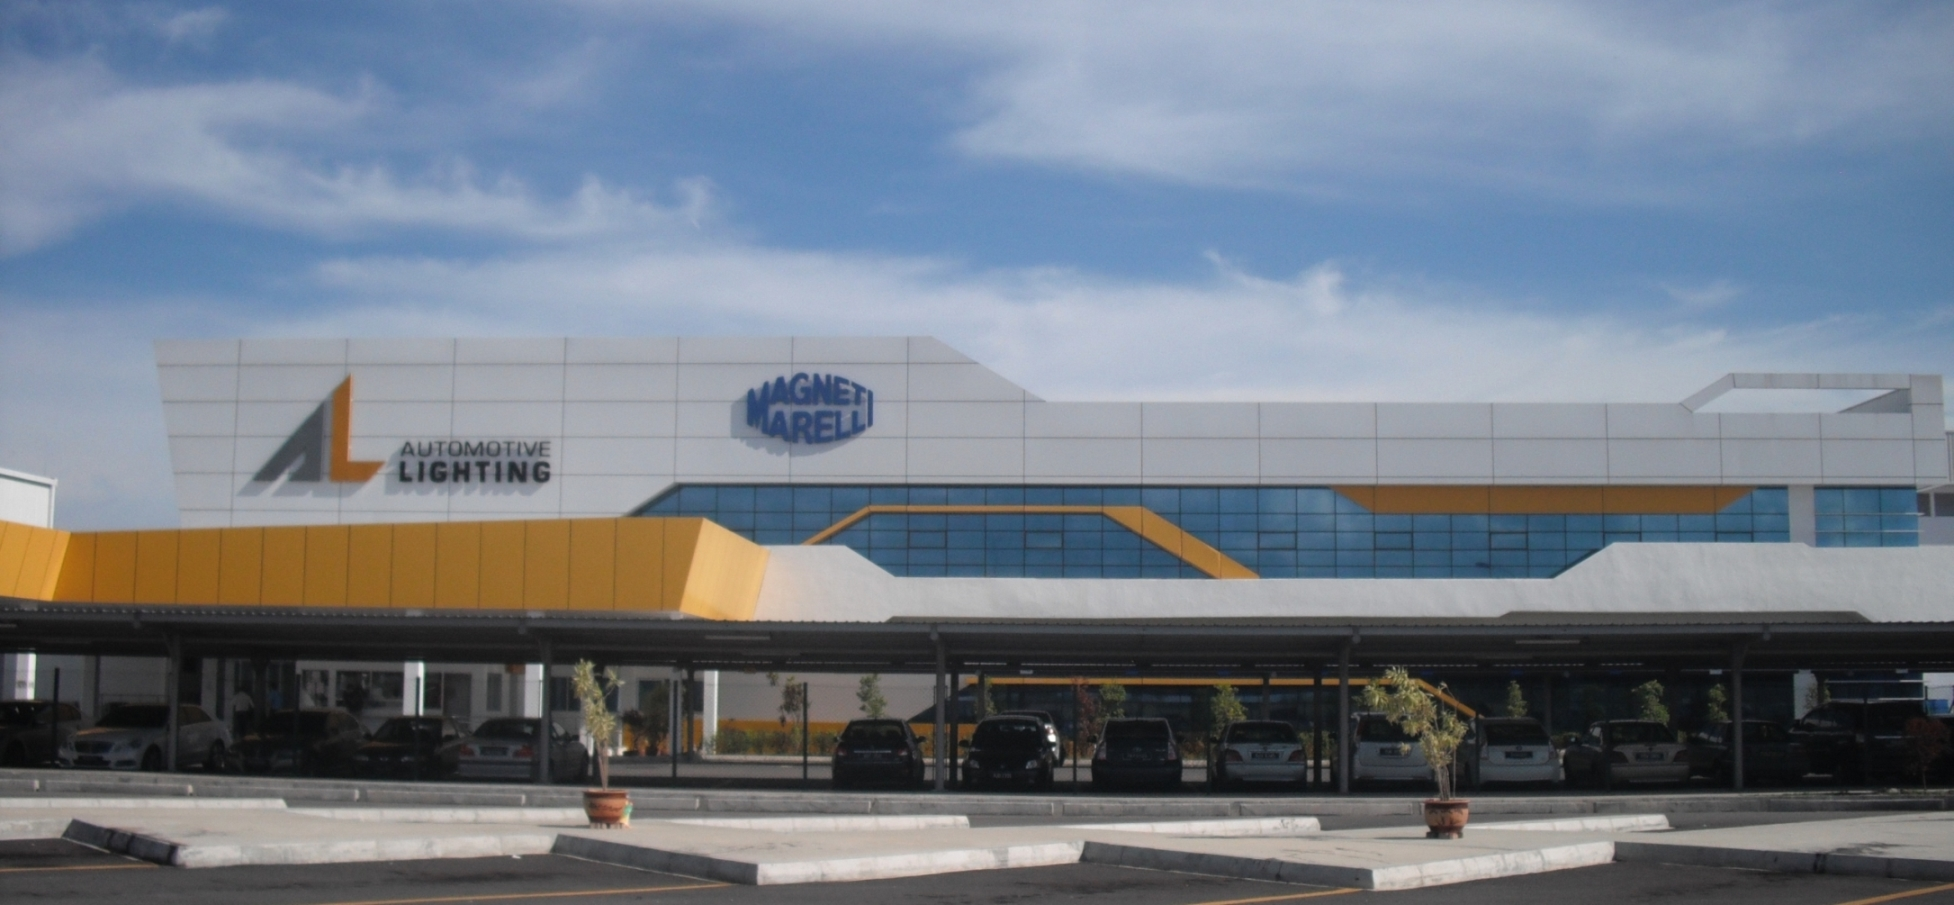 magneti marelli inaugurates a new automotive lighting plant in the